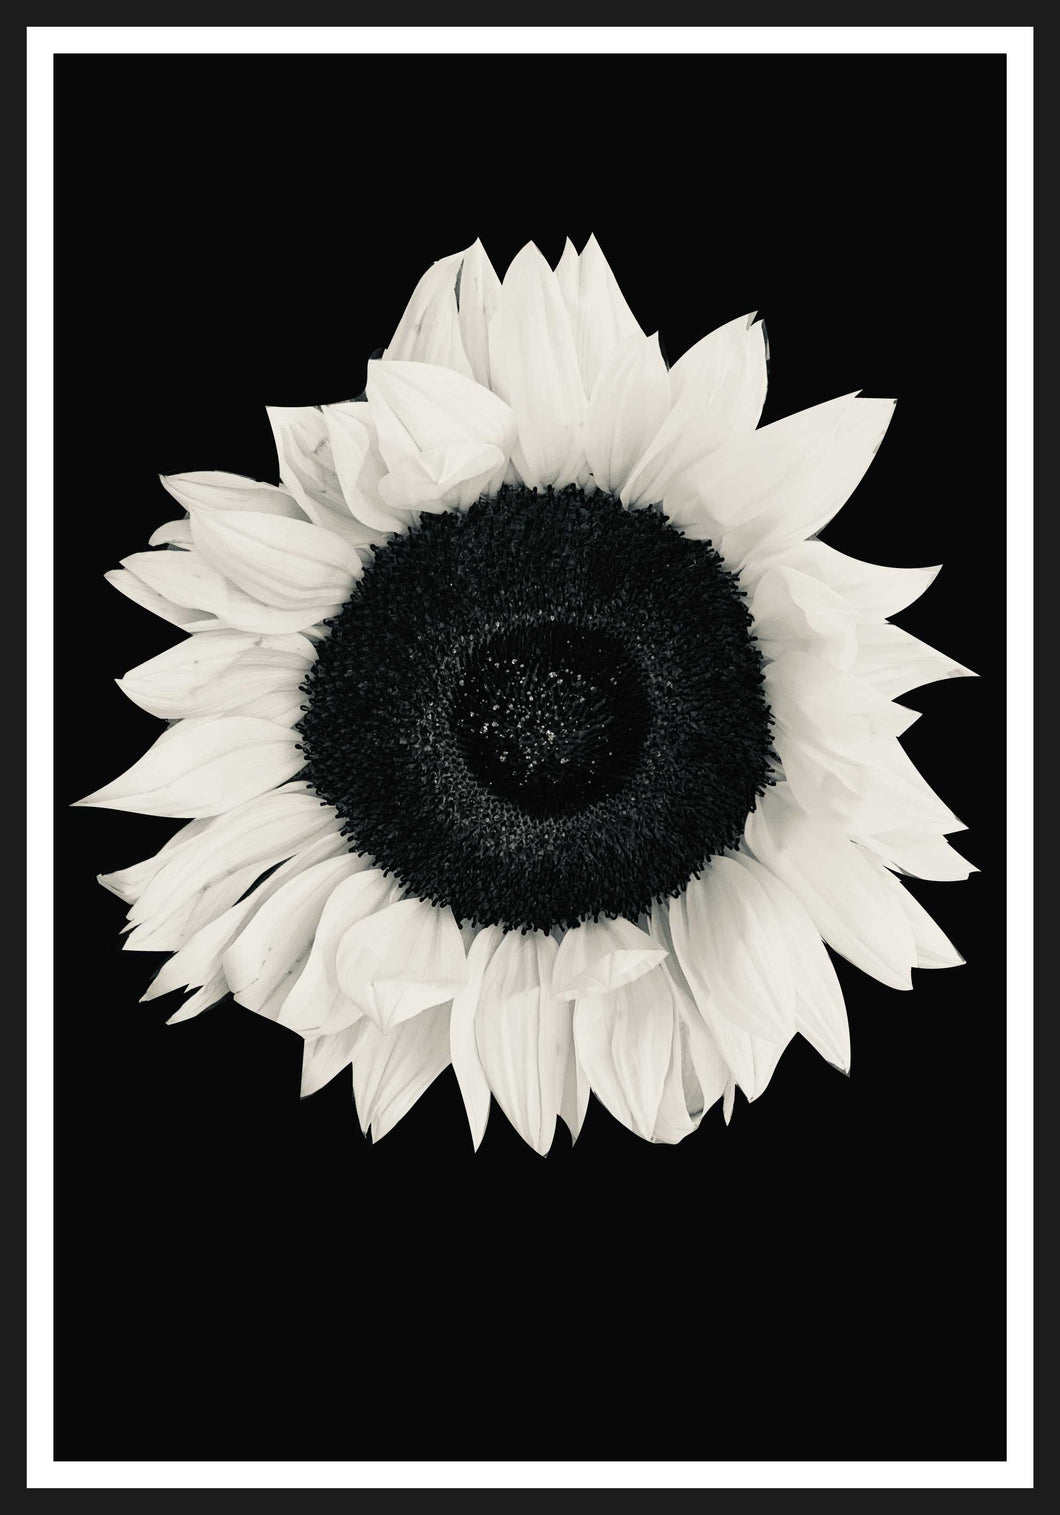 Sunflower black and white